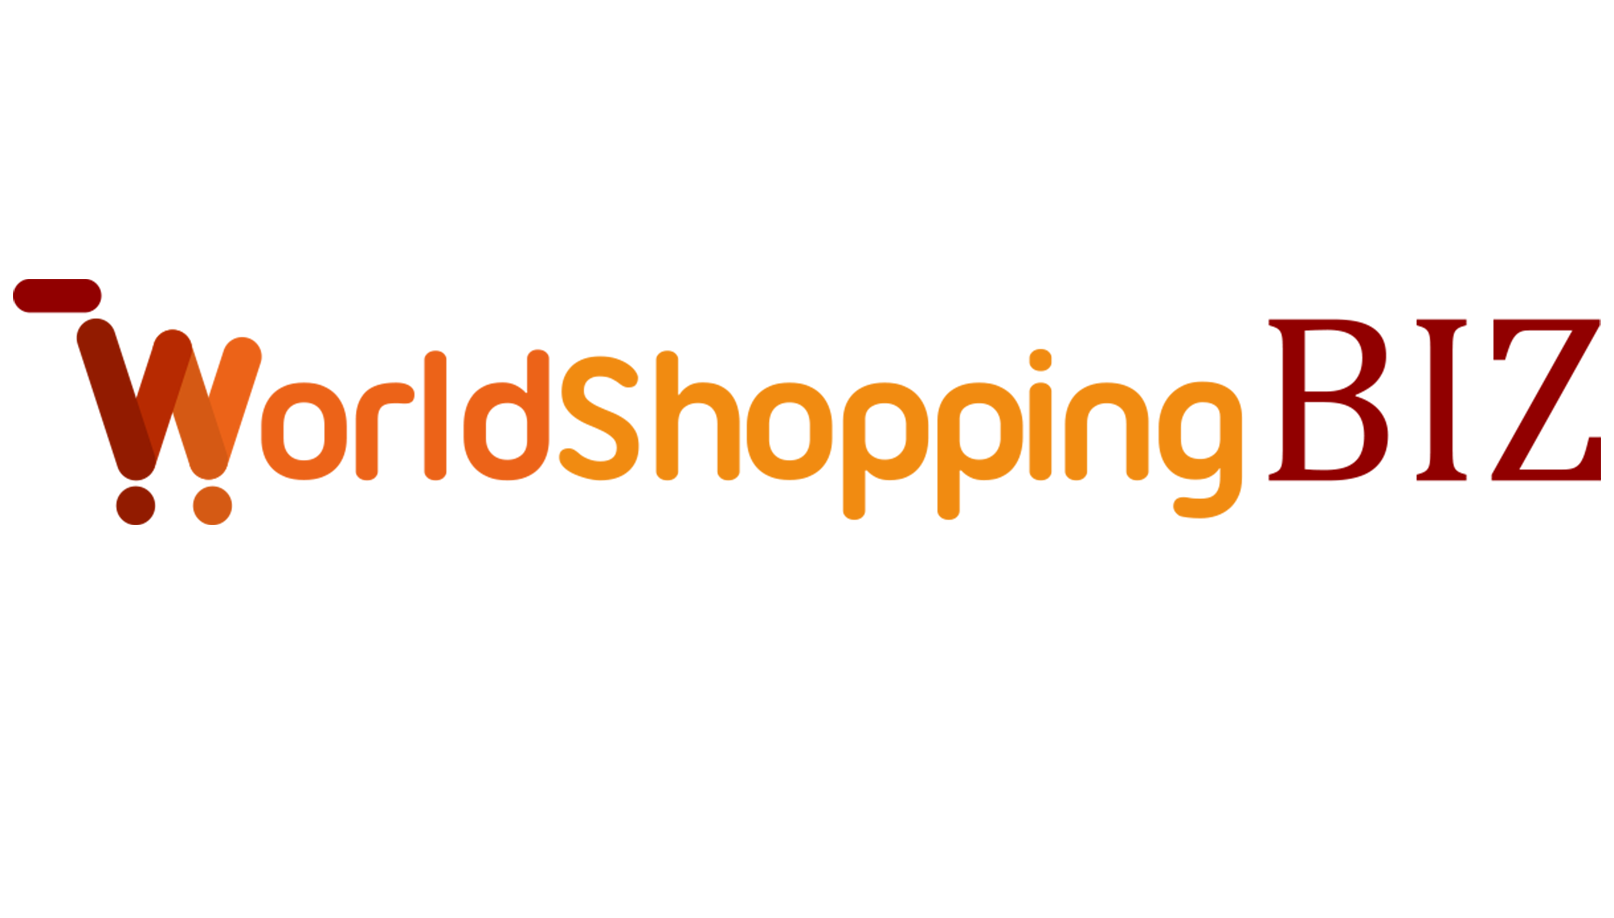 WorldShopping BIZ